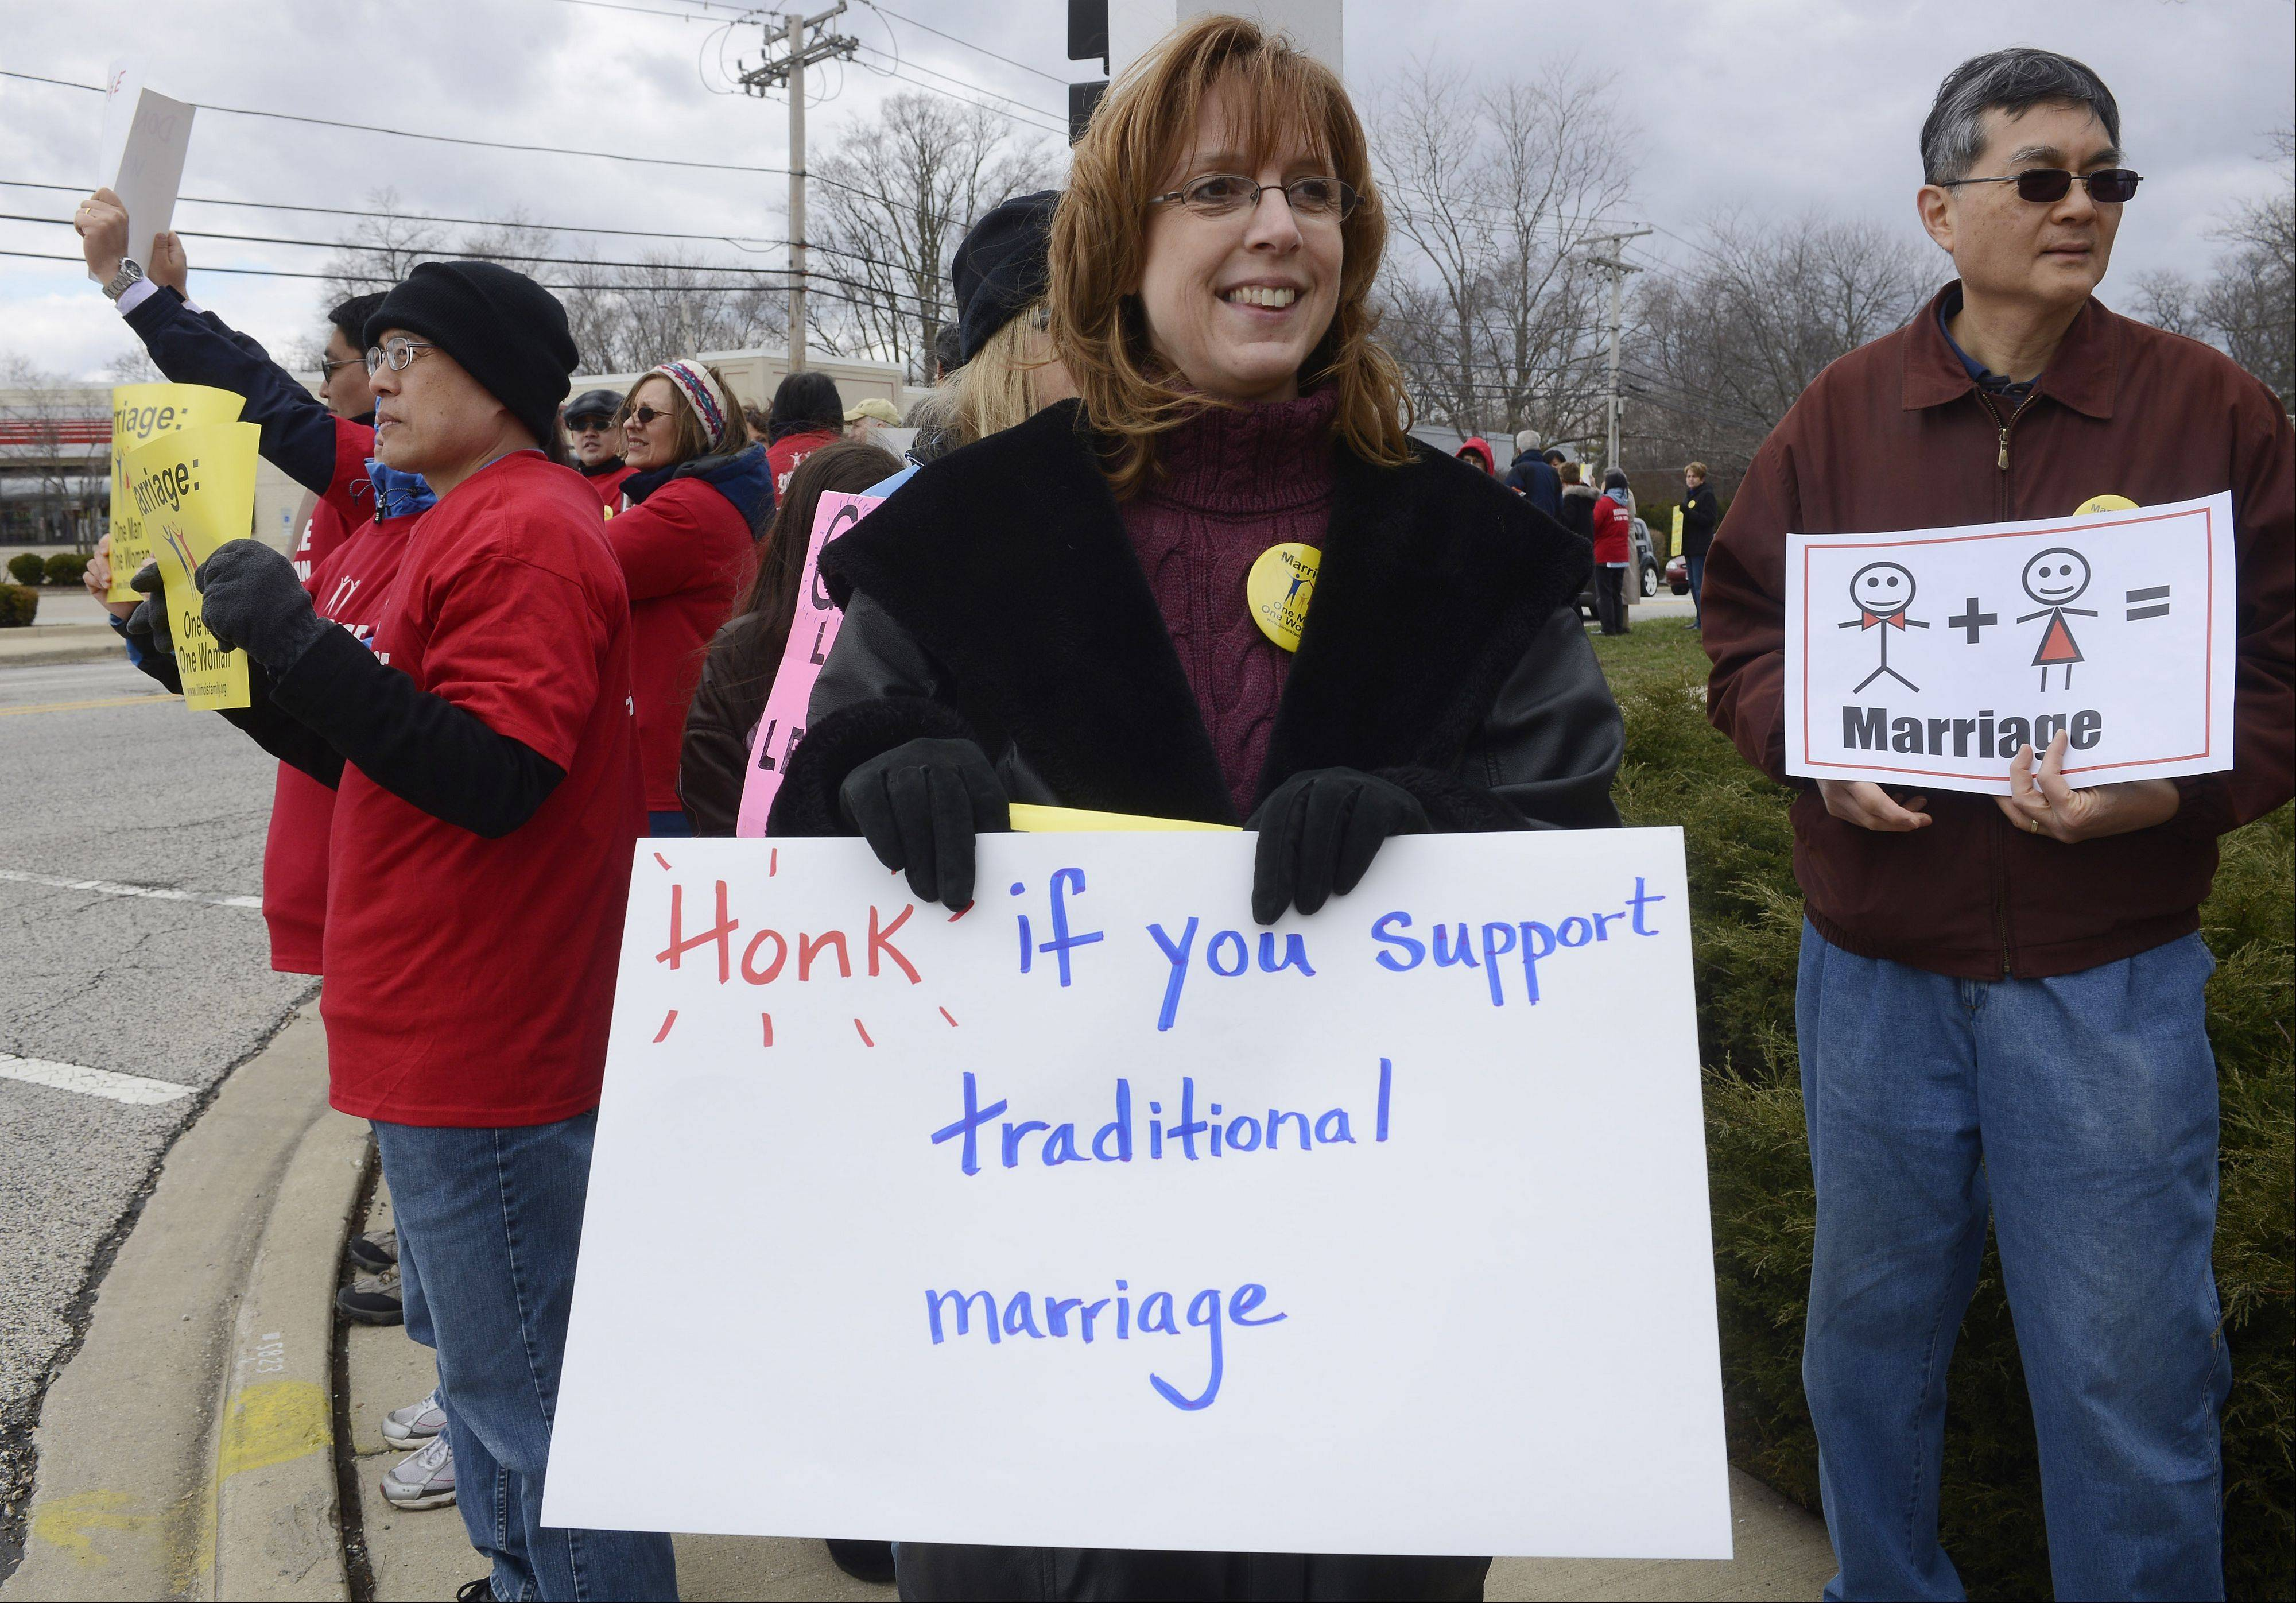 Activist Elise Bouc of Lake Zurich leads a protest opposing gay marriage Saturday outside state Rep. Ed Sullivan Jr.'s office in Mundelein.